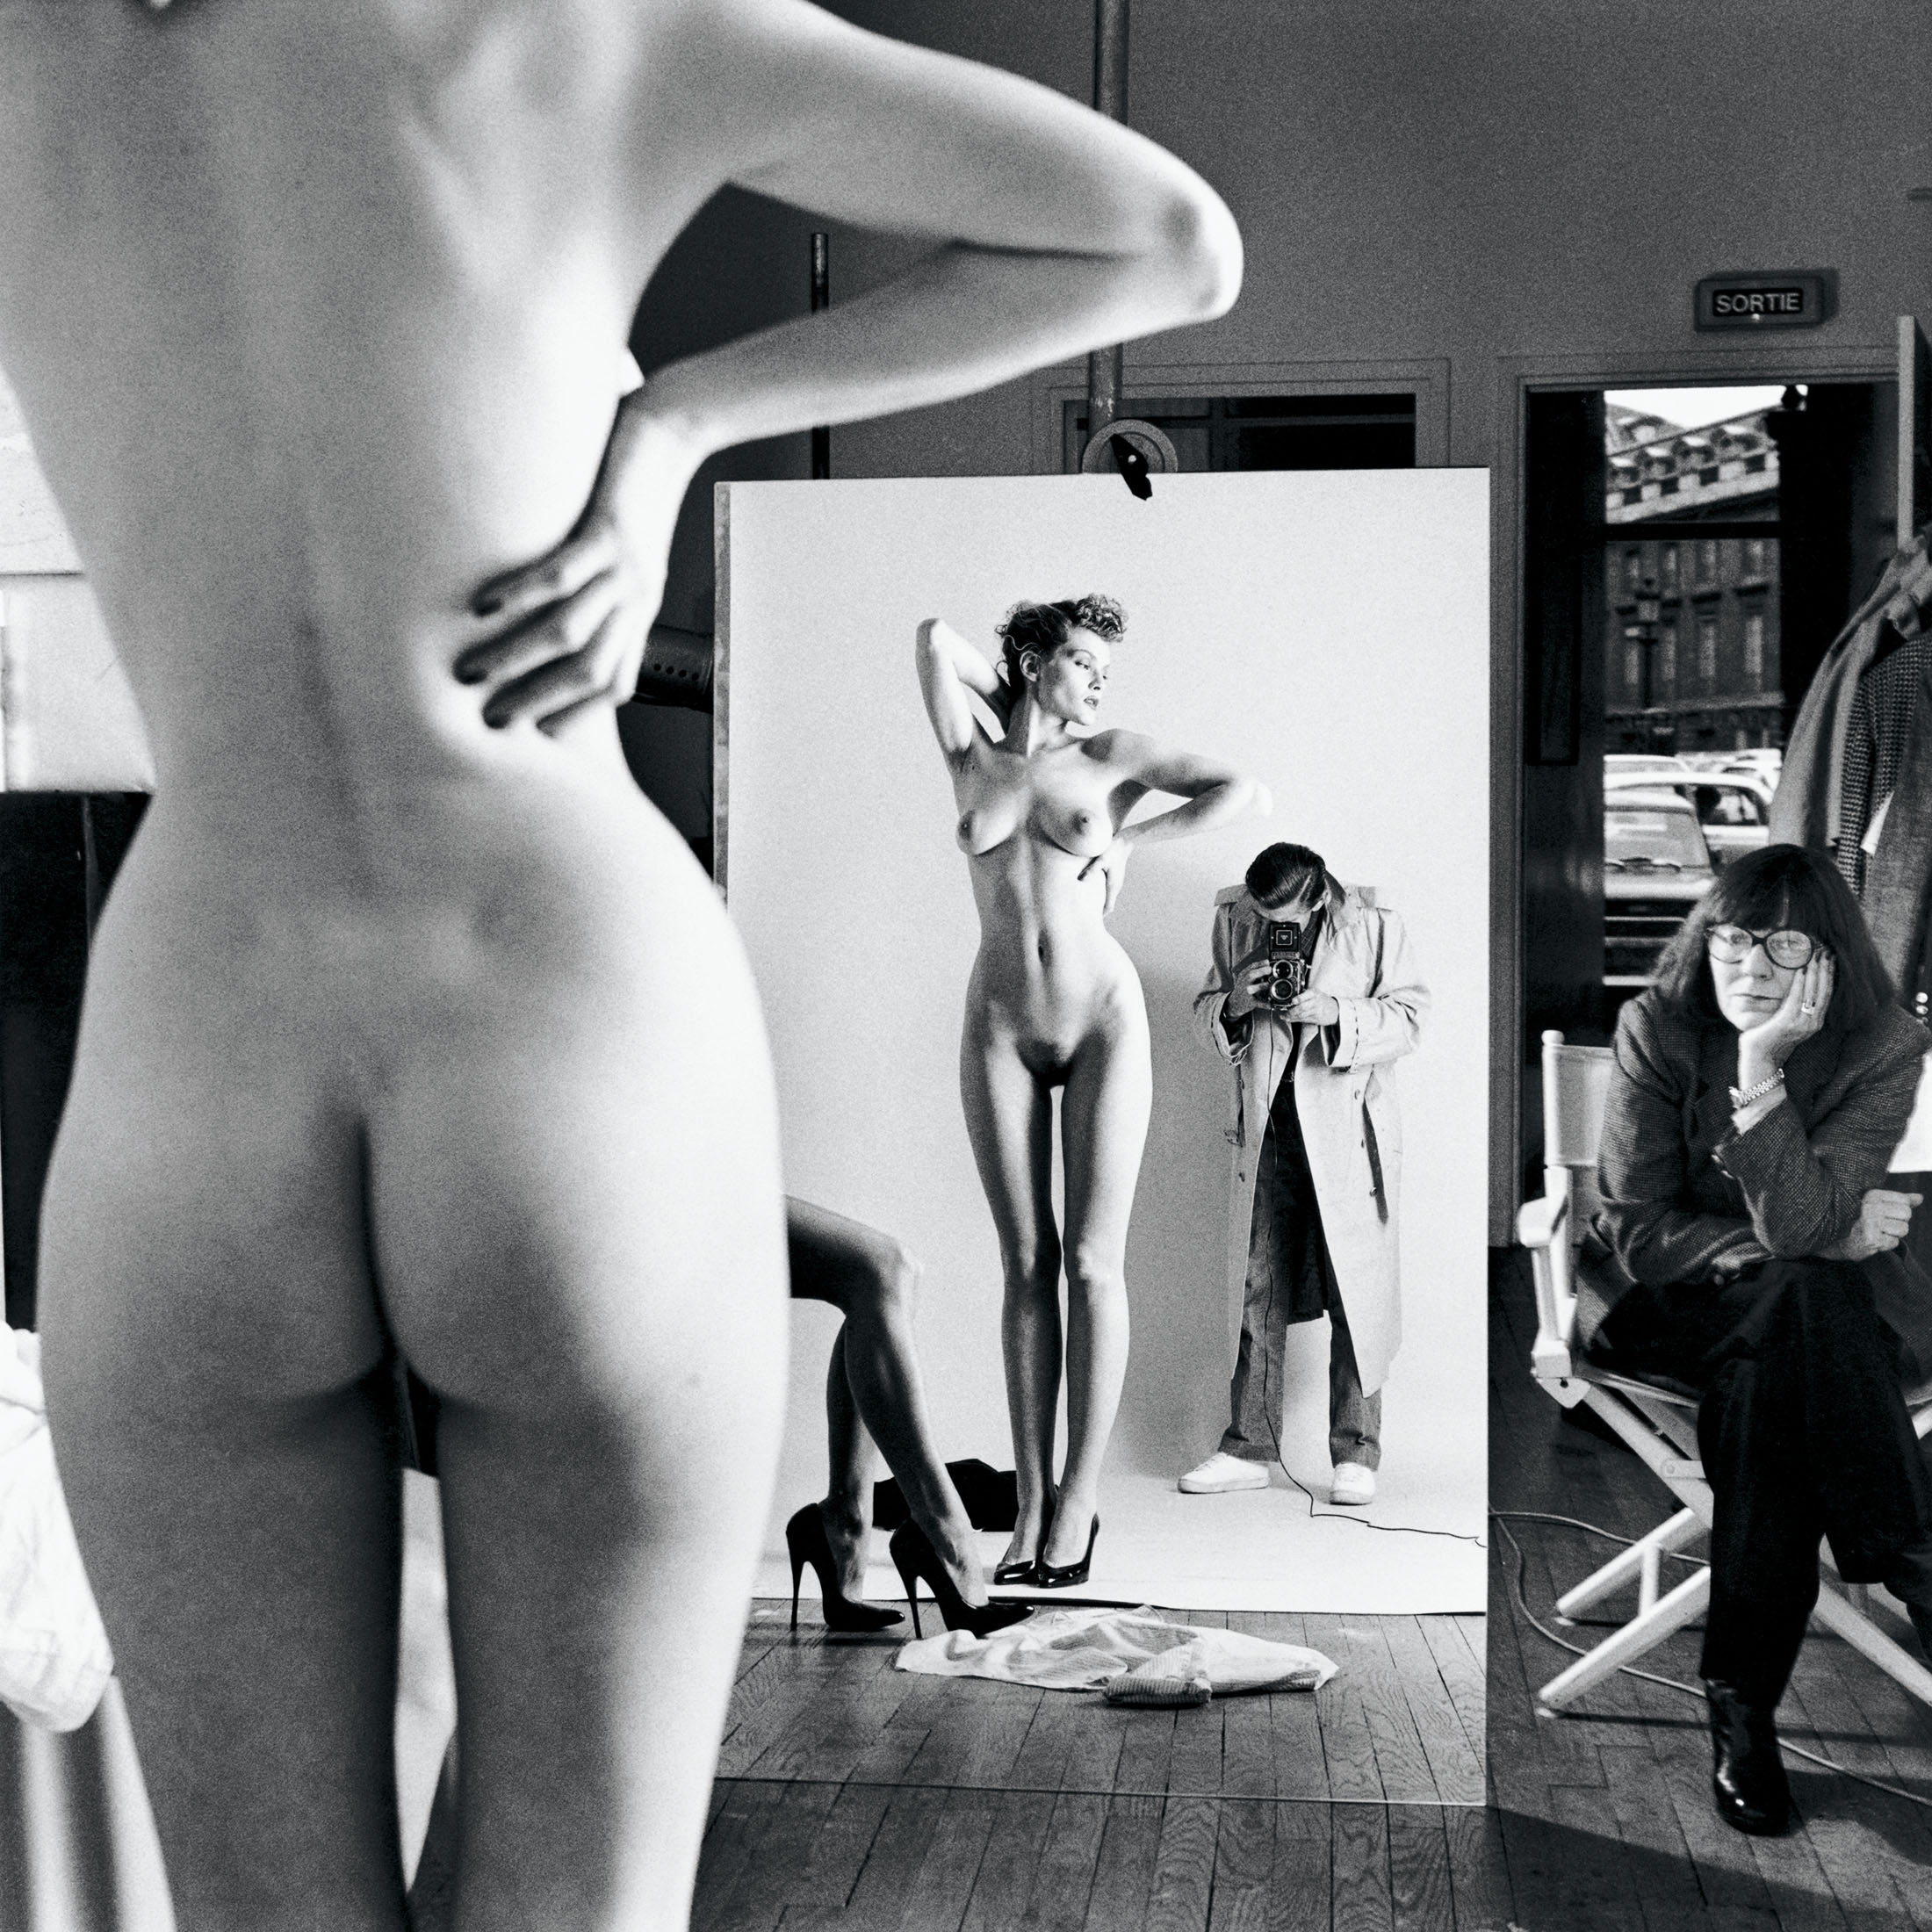 HELMUT NEWTON. FOTOGRAFIE. WHITE WOMEN / SLEEPLESS NIGHTS / BIG NUDES